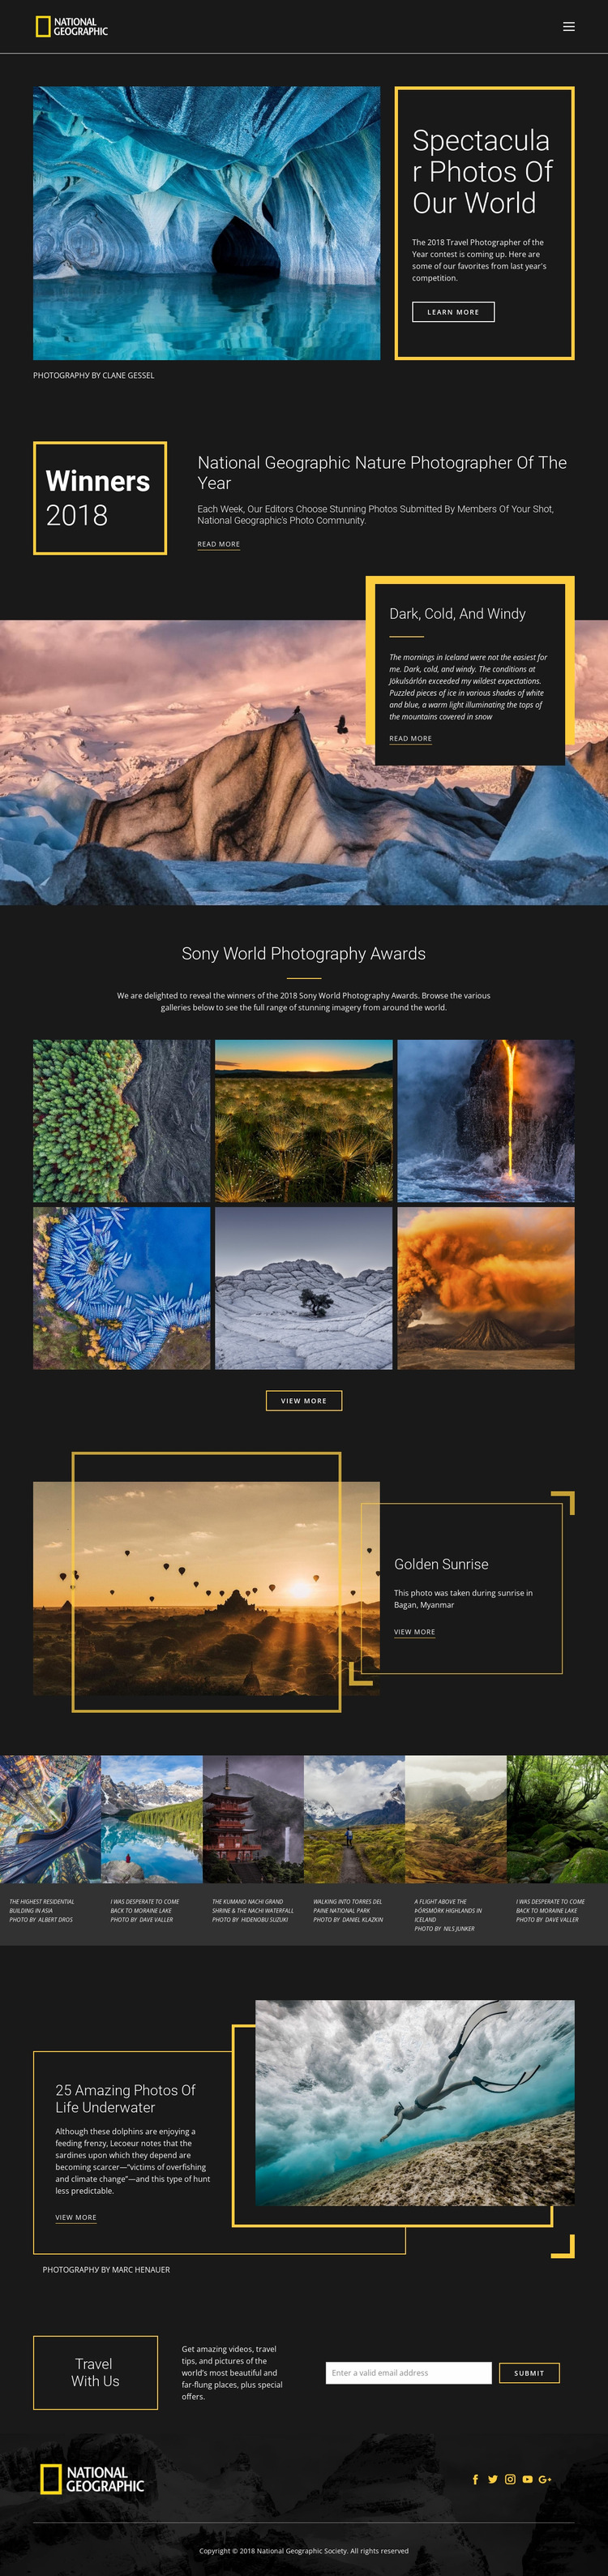 Pictures of nature Html Website Builder